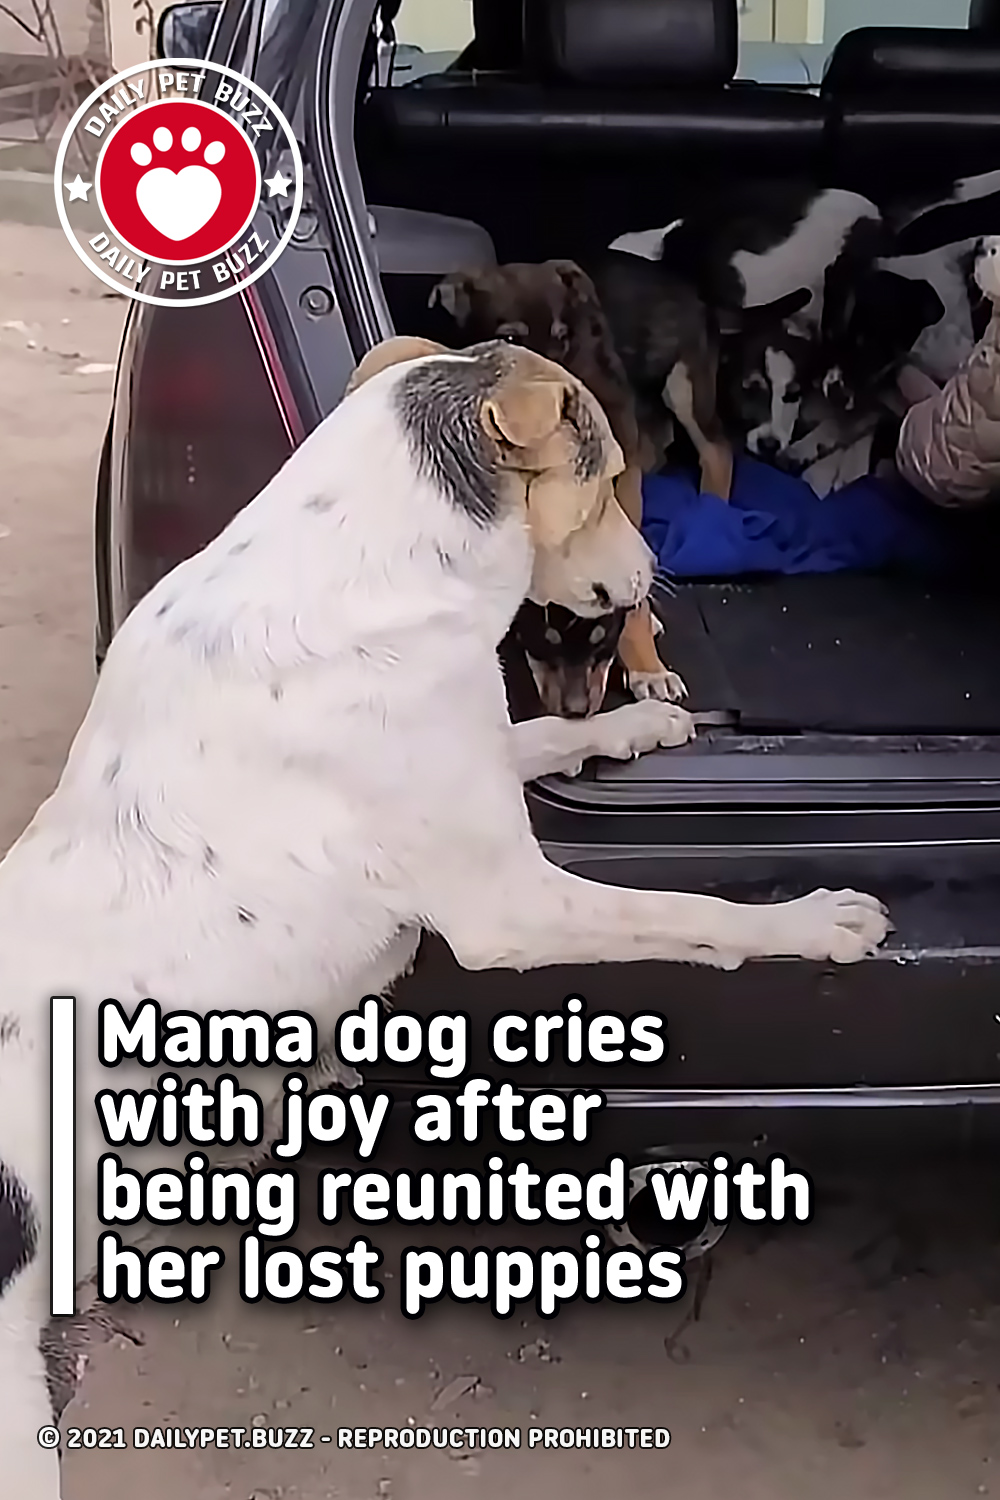 Mama dog cries with joy after being reunited with her lost puppies